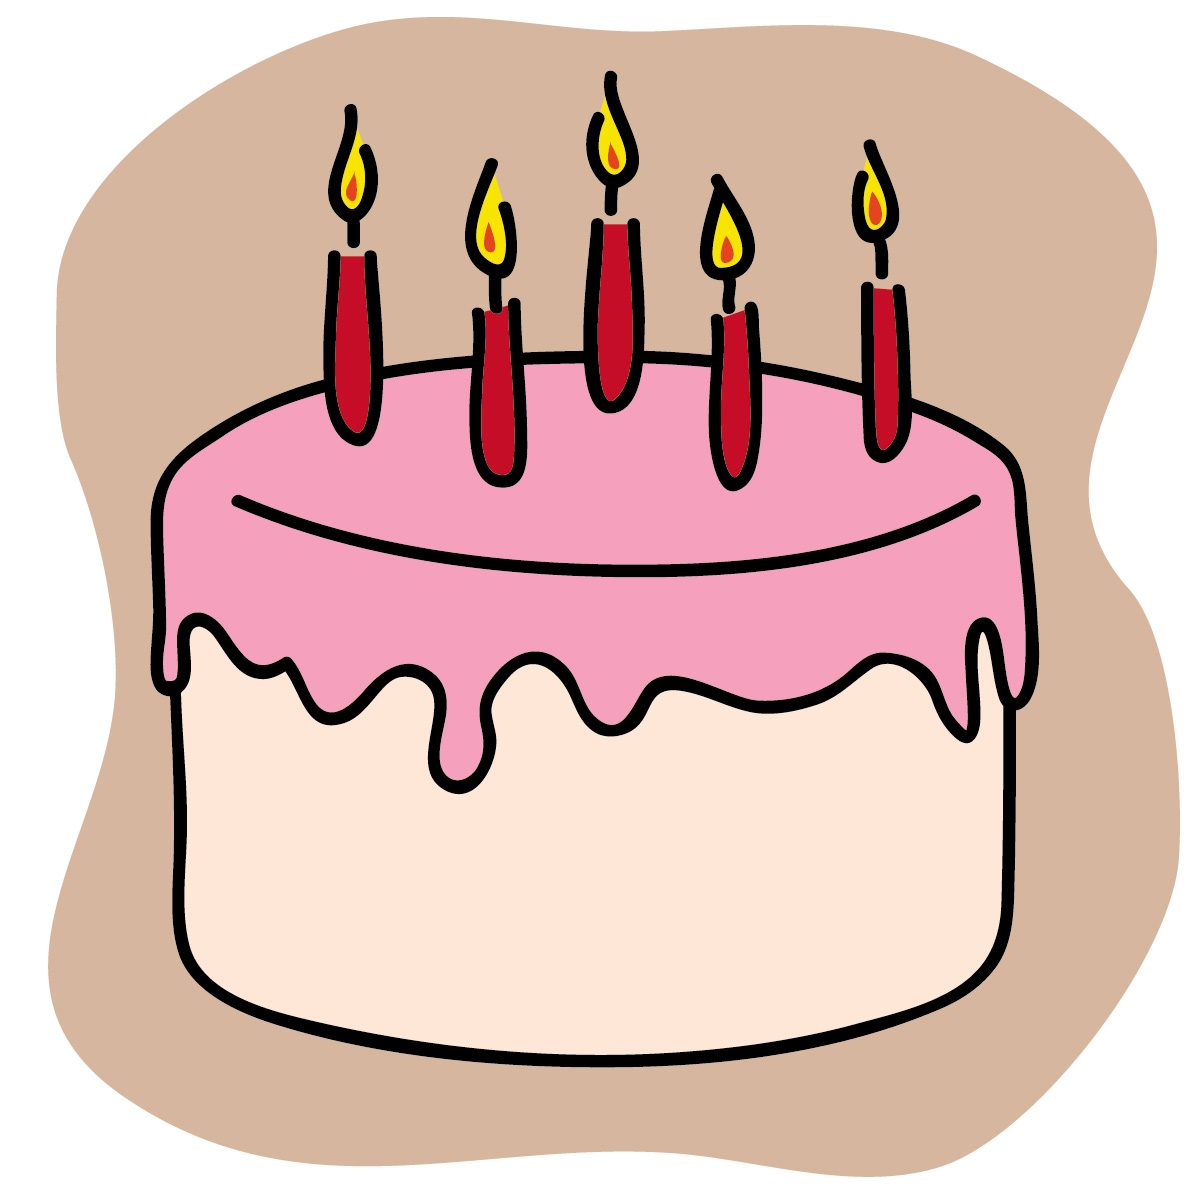 Free Birthday Cake Clip Art-free birthday cake clip art-5